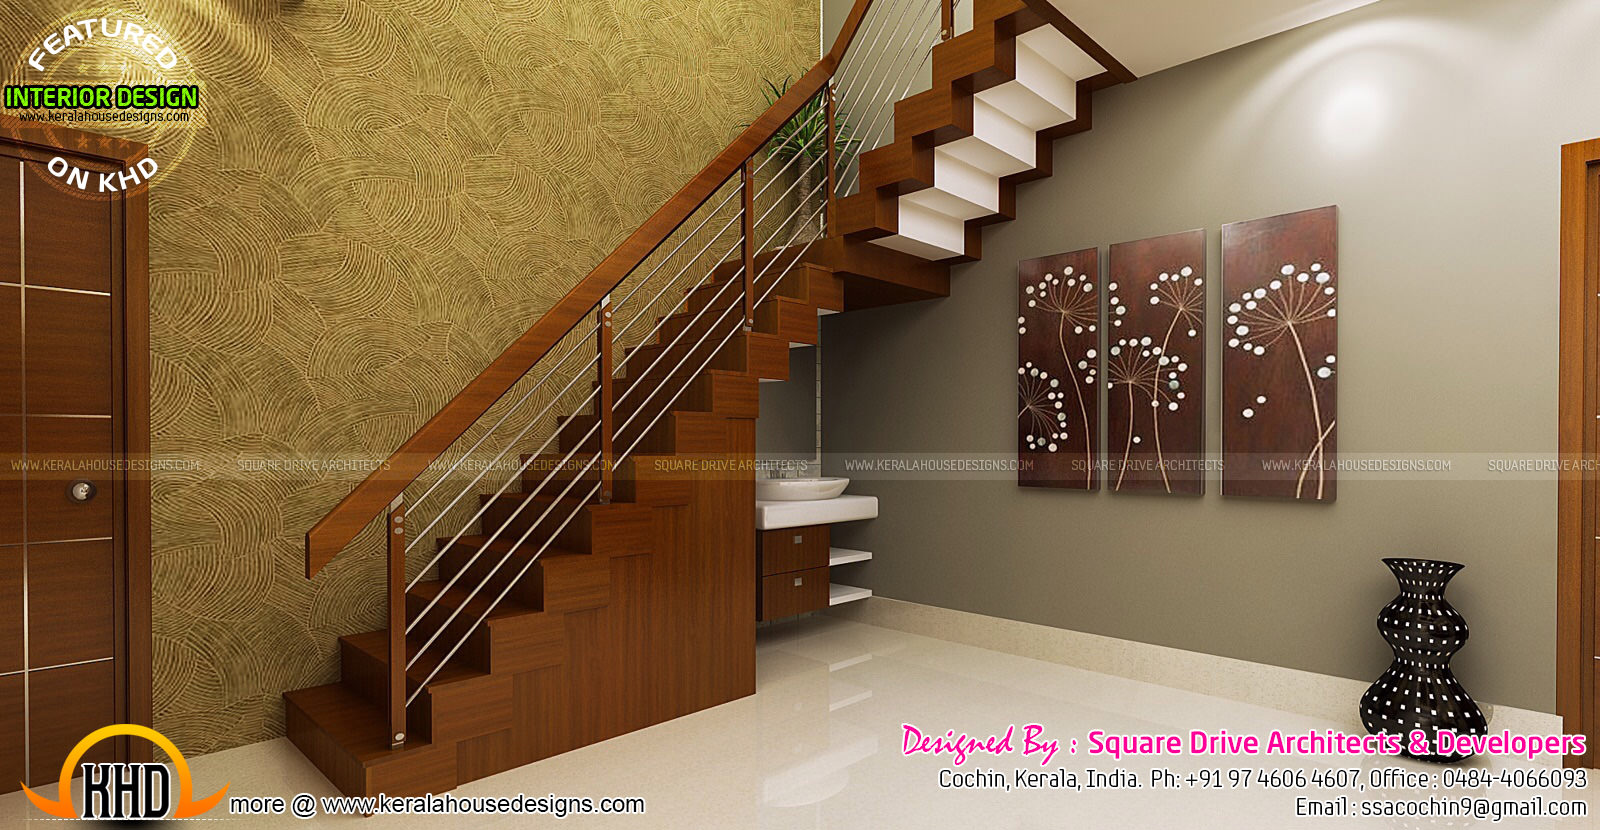 Stair area upper living bedroom interiors kerala home for Interior design ideas for small homes in kerala